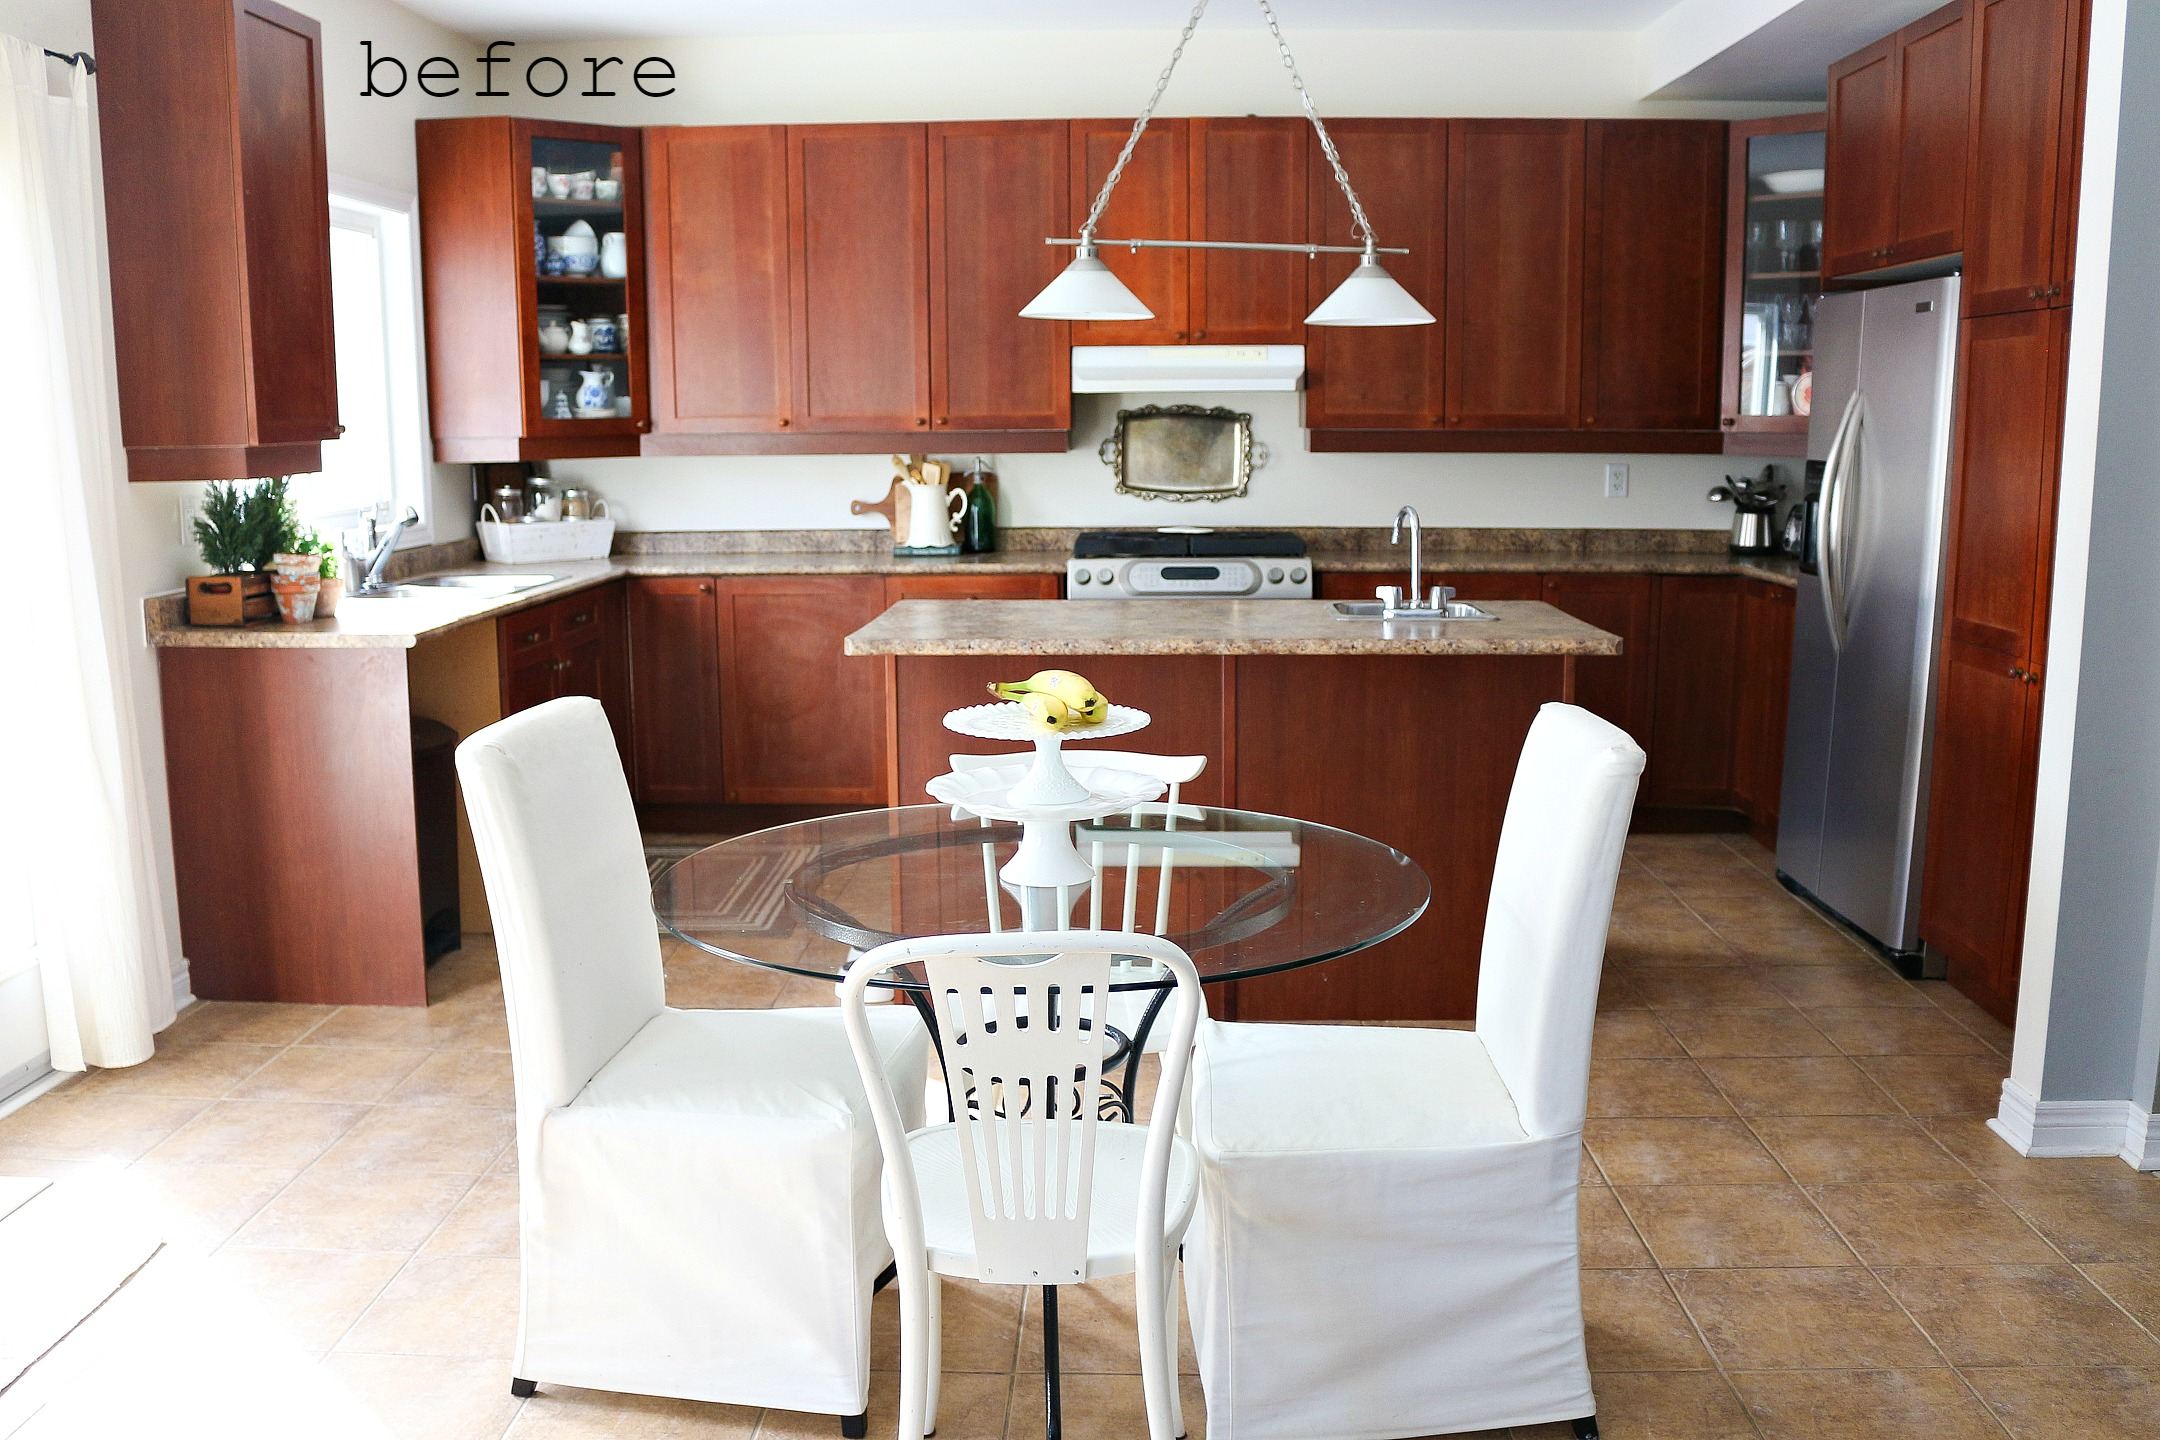 Before Kitchen Makeover with Fusion Mineral Paint. After…